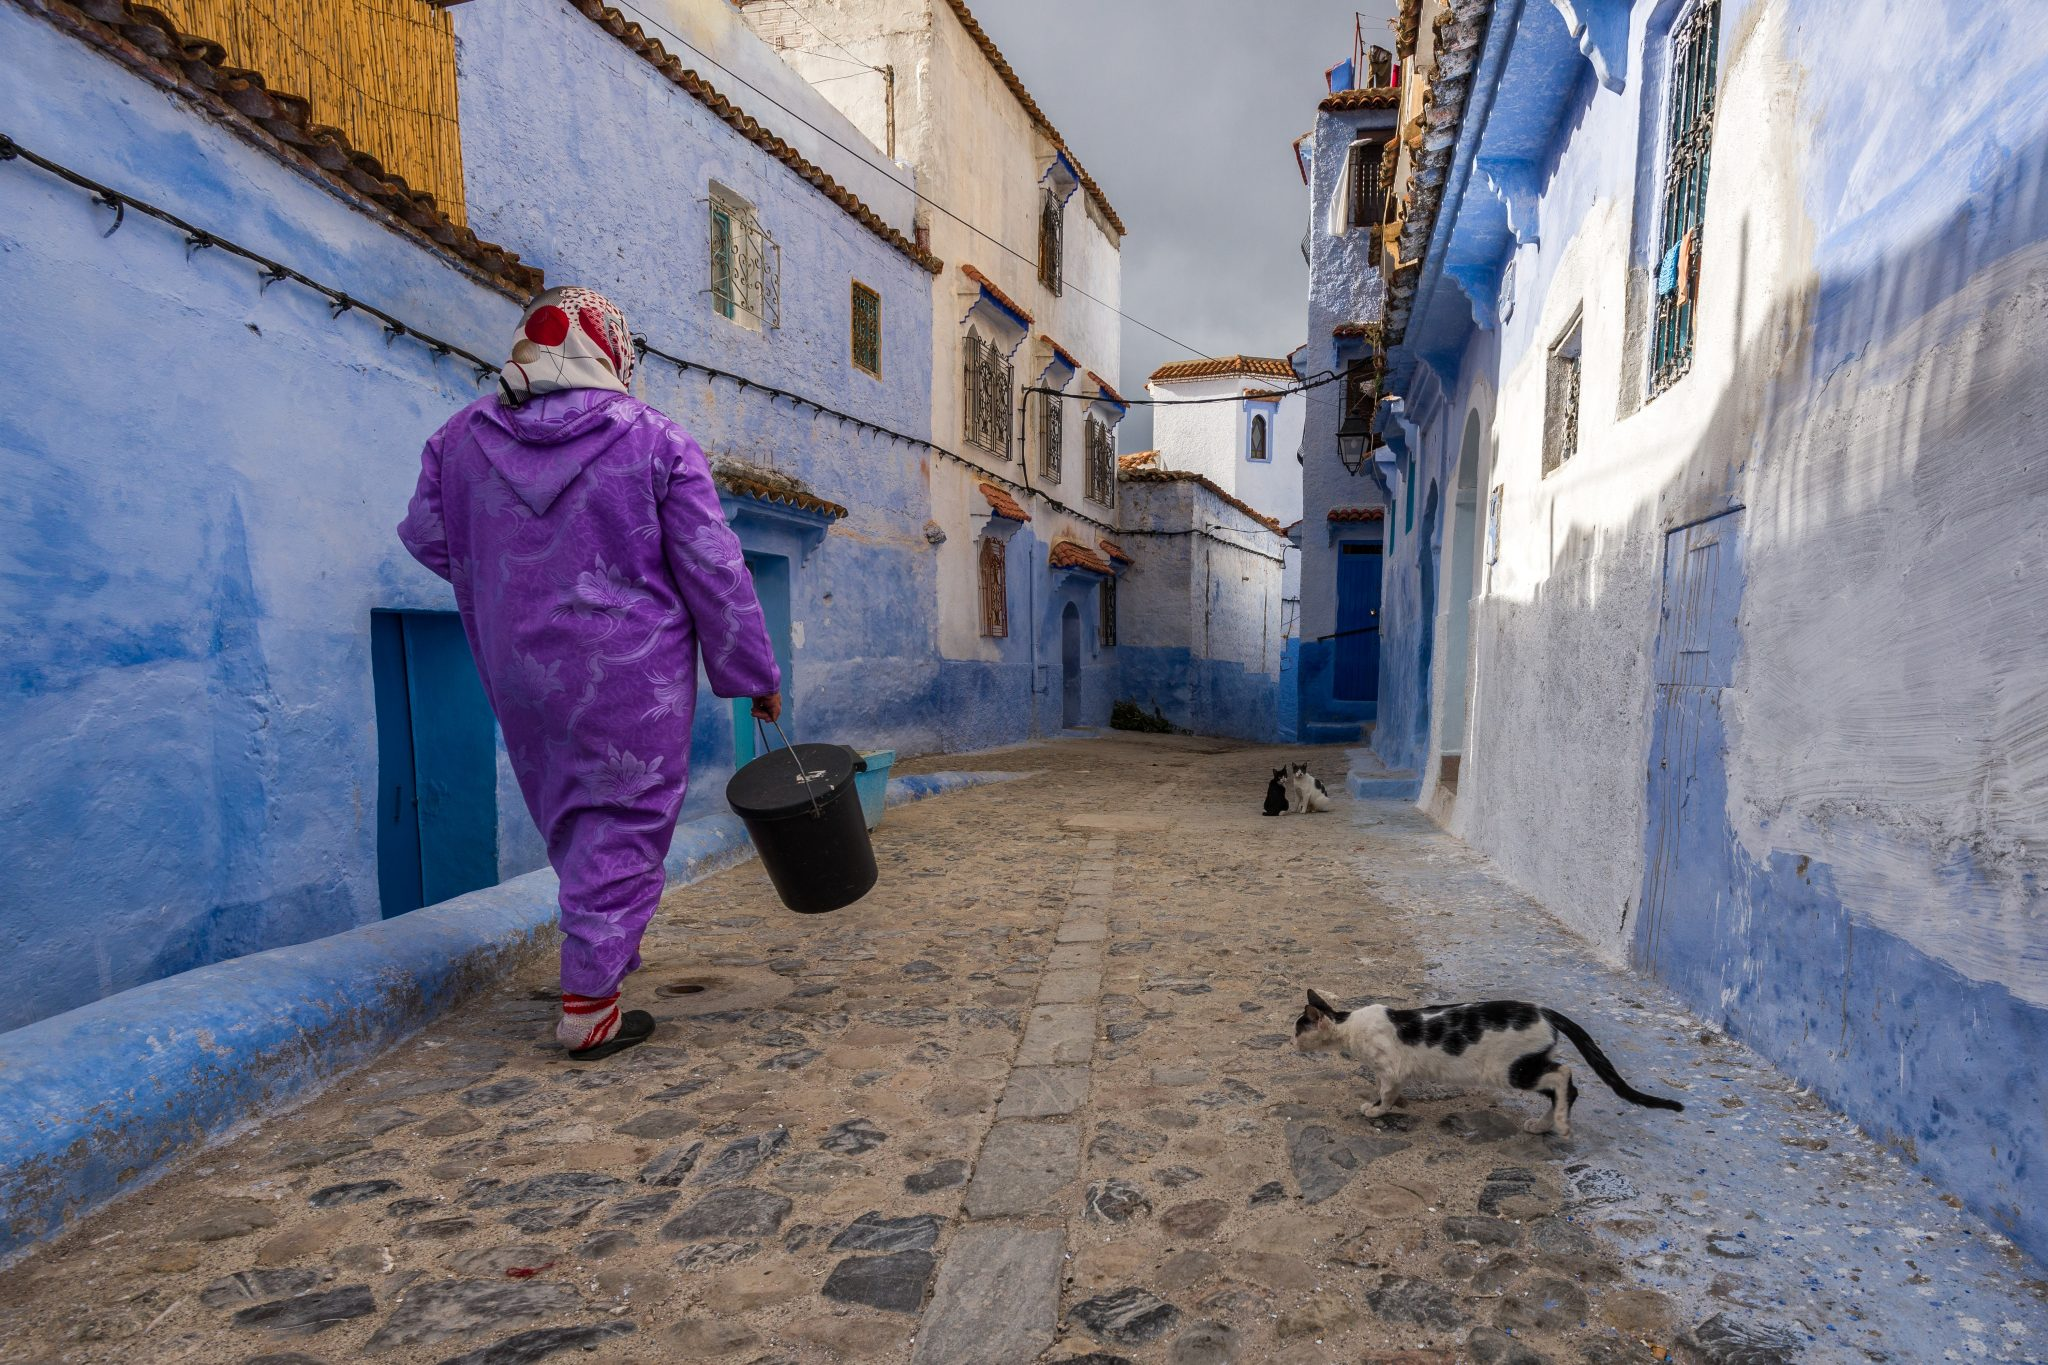 Morocco, Chefchouen, Woman Walking